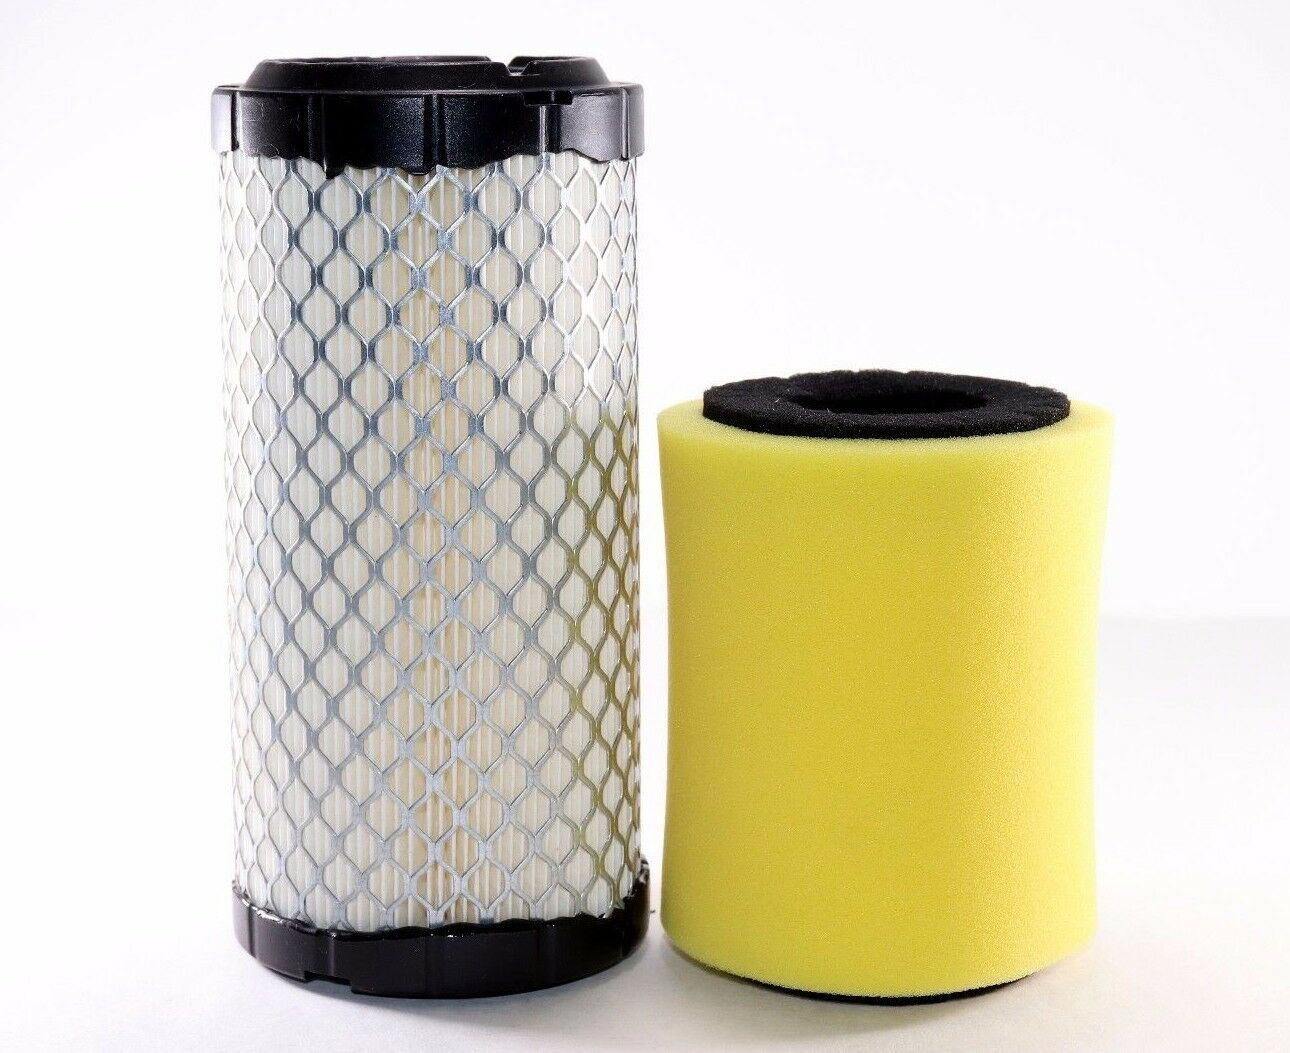 Kawasaki Mule Air Filter Cleaner Kit Replacement 11013 1290 3010 Fuel 1 Of 2free Shipping